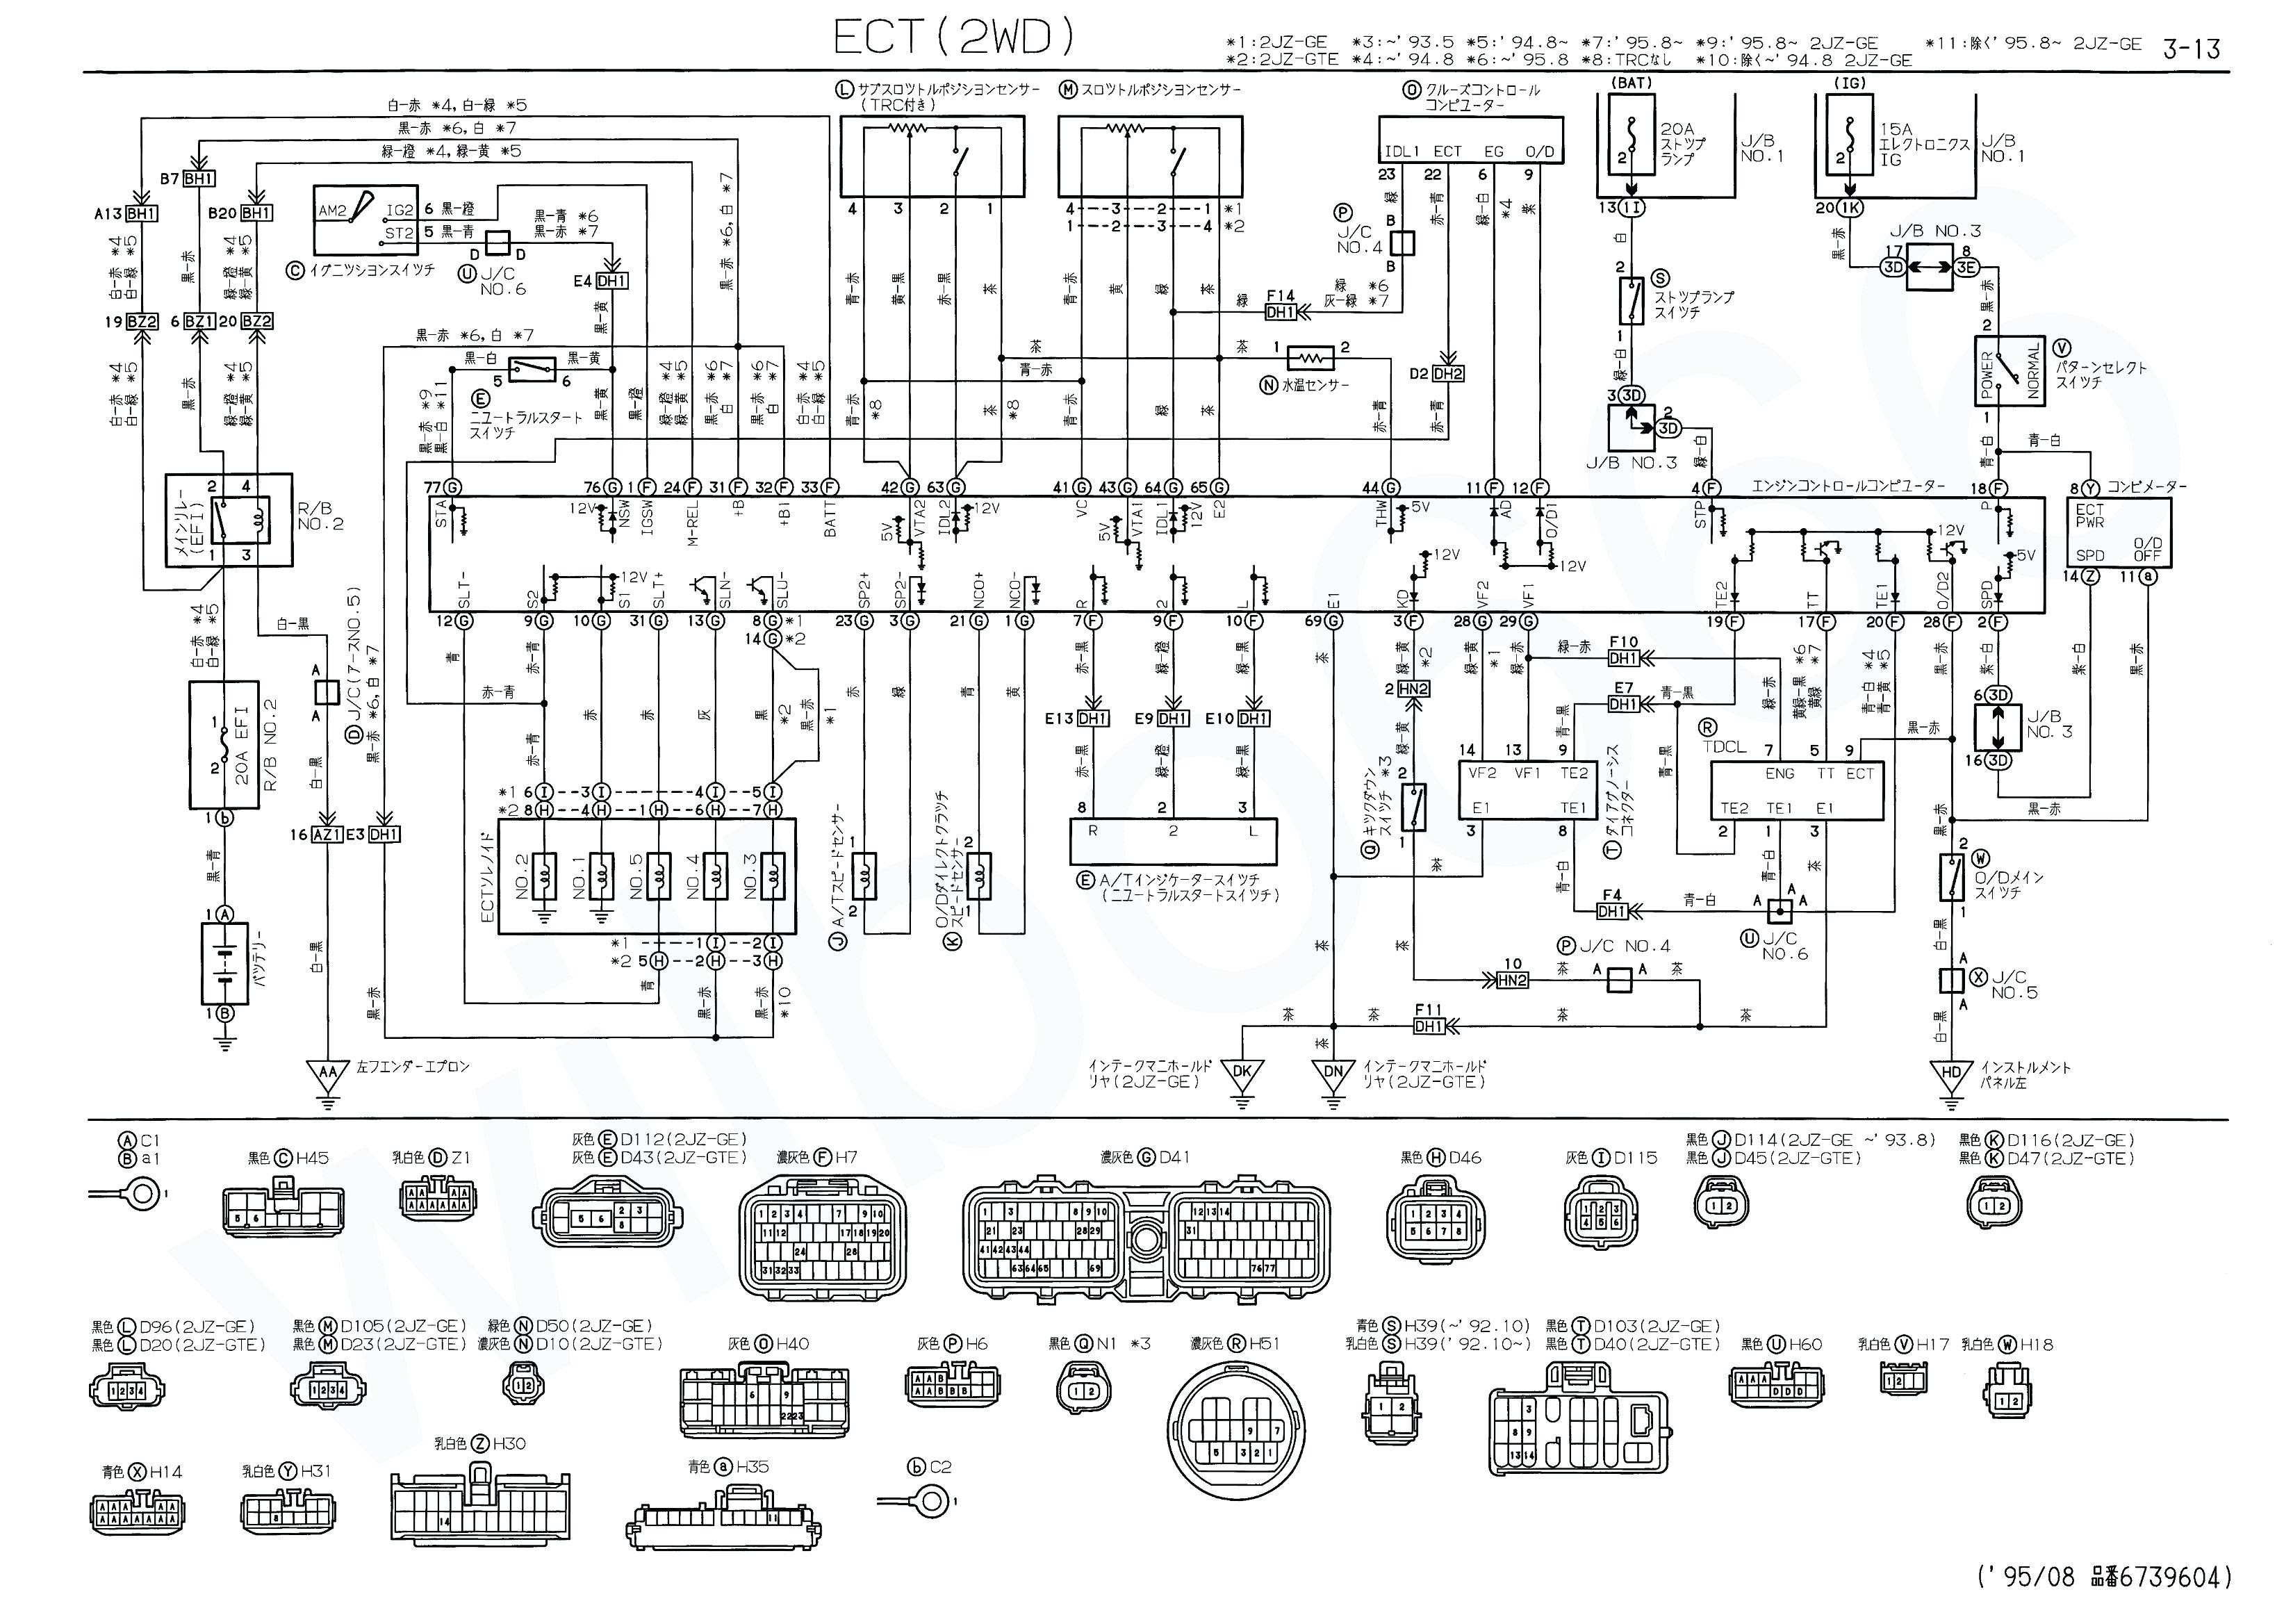 2003 Toyota Camry Le Wiring Diagram Twin Star Wiring Diagram Wiring Diagram Schematics